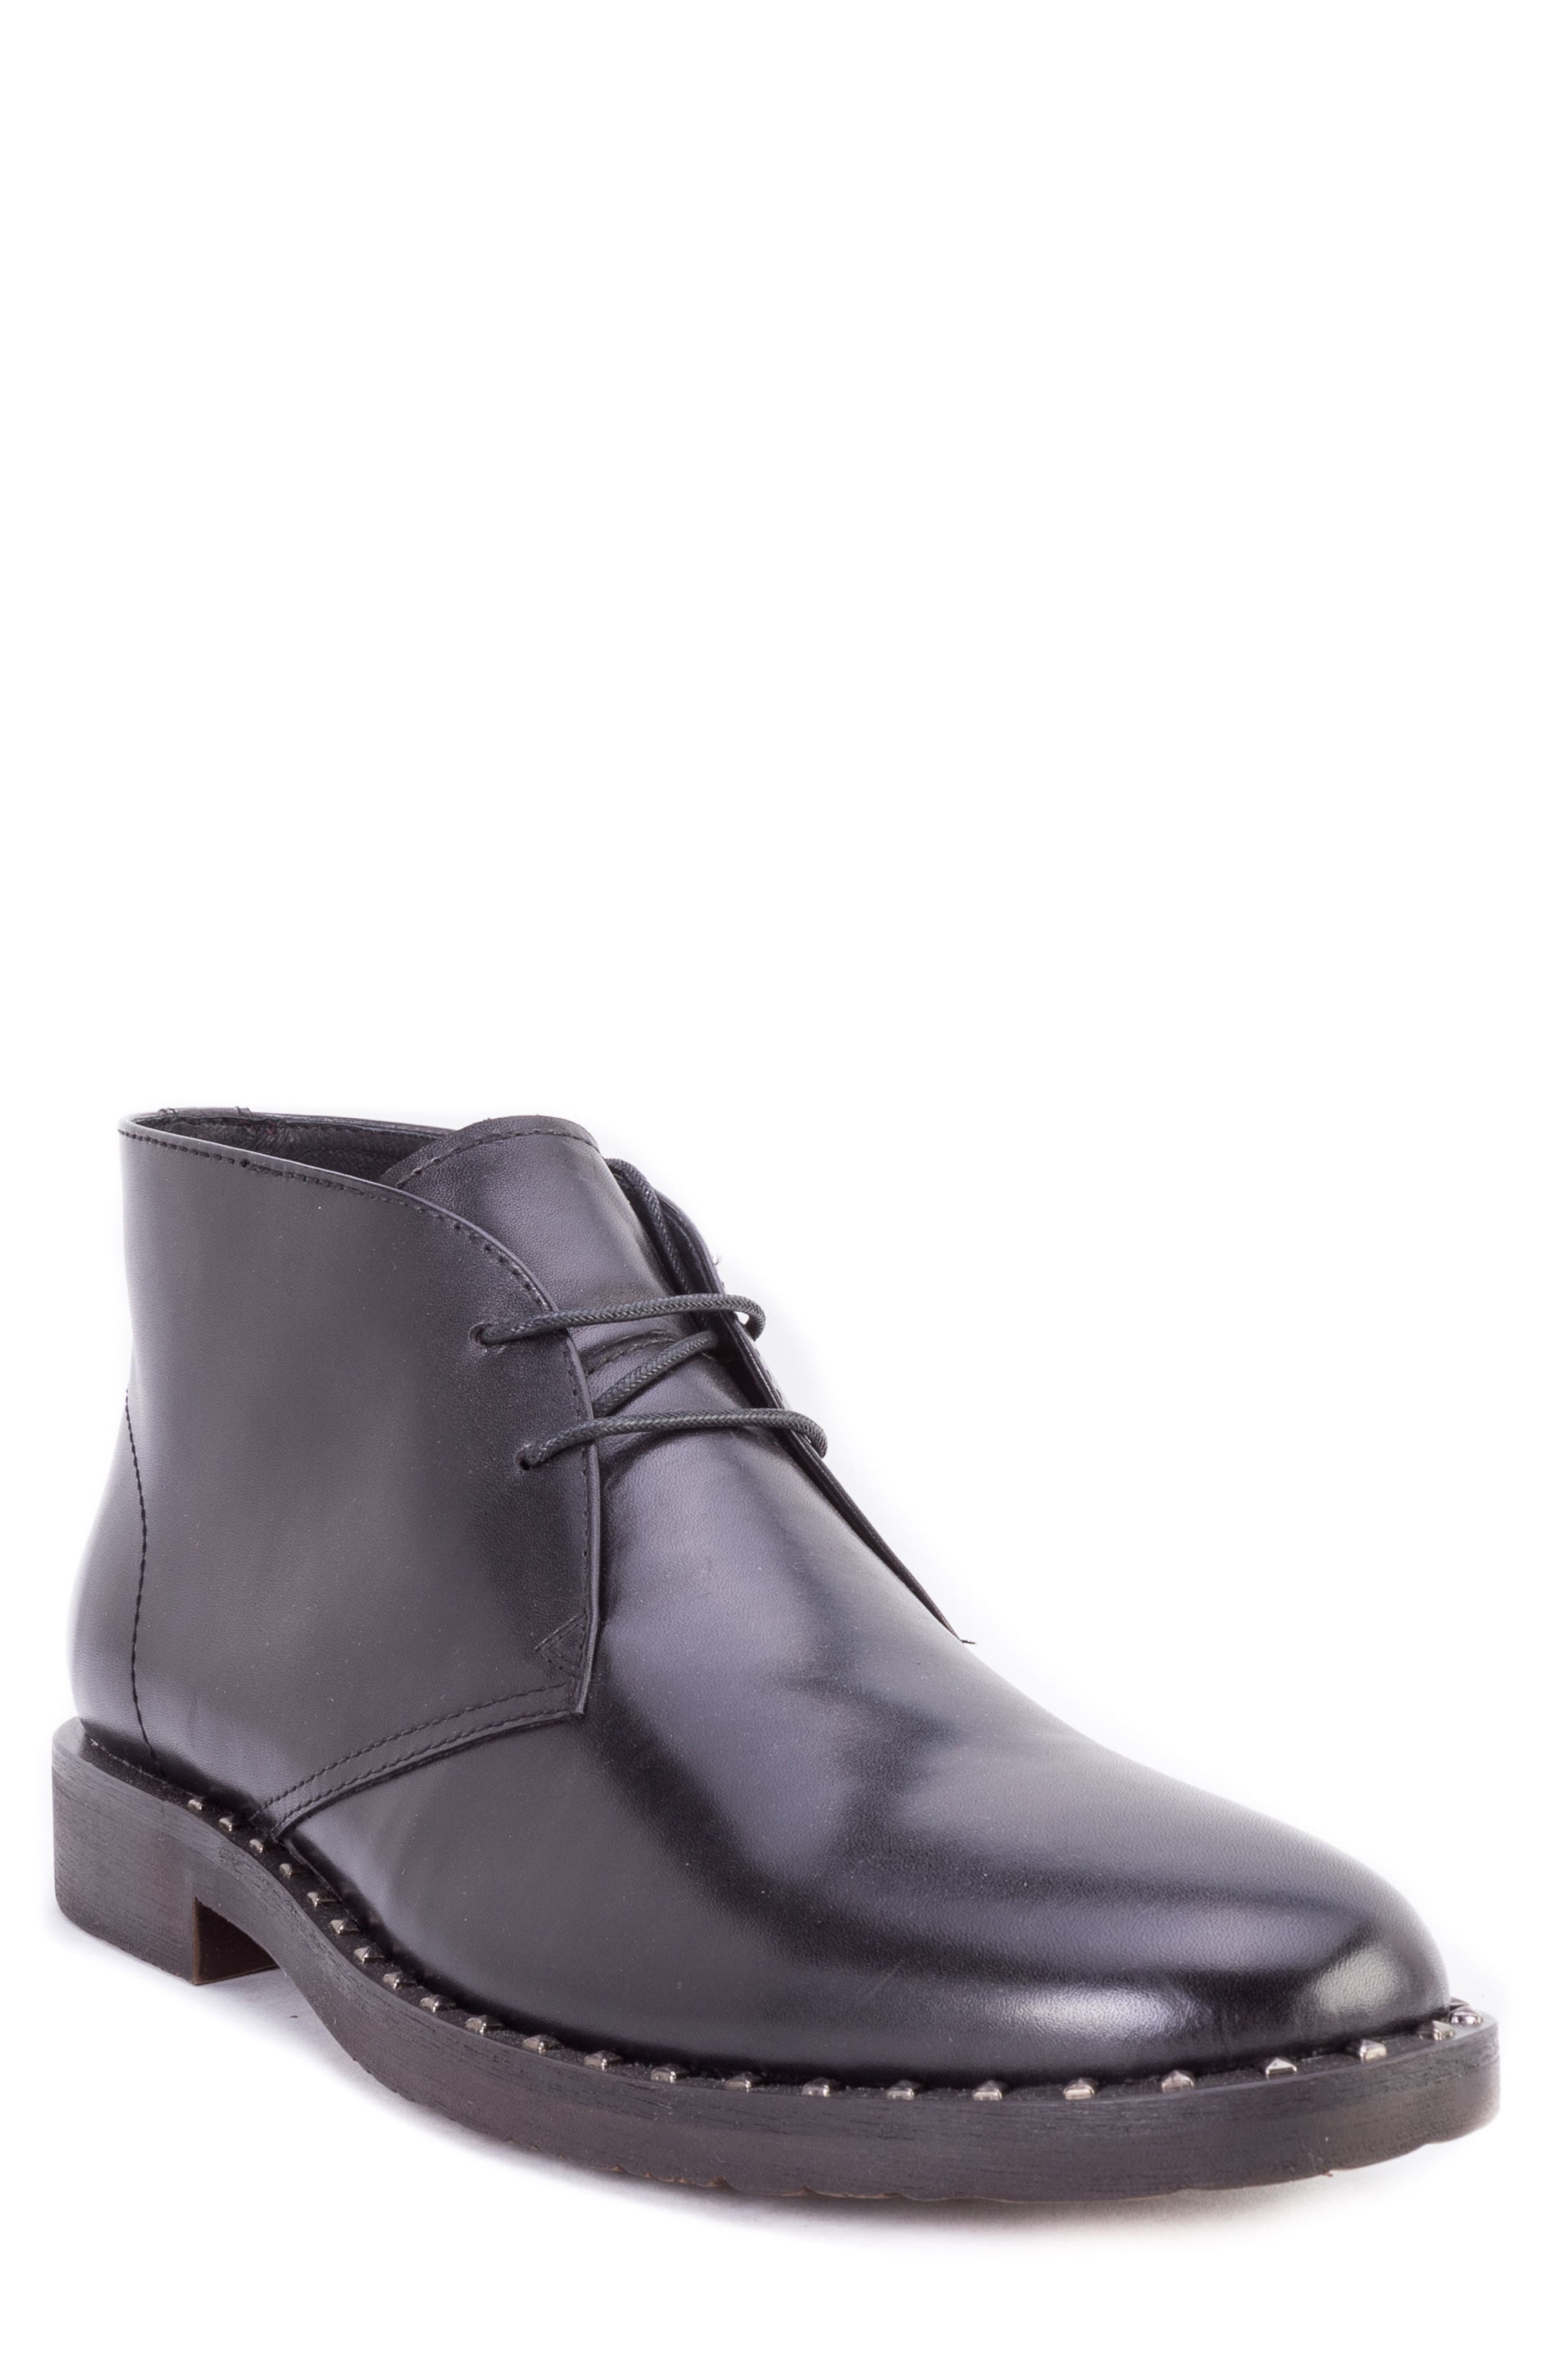 Norrie Studded Chukka Boot,                             Main thumbnail 1, color,                             BLACK LEATHER